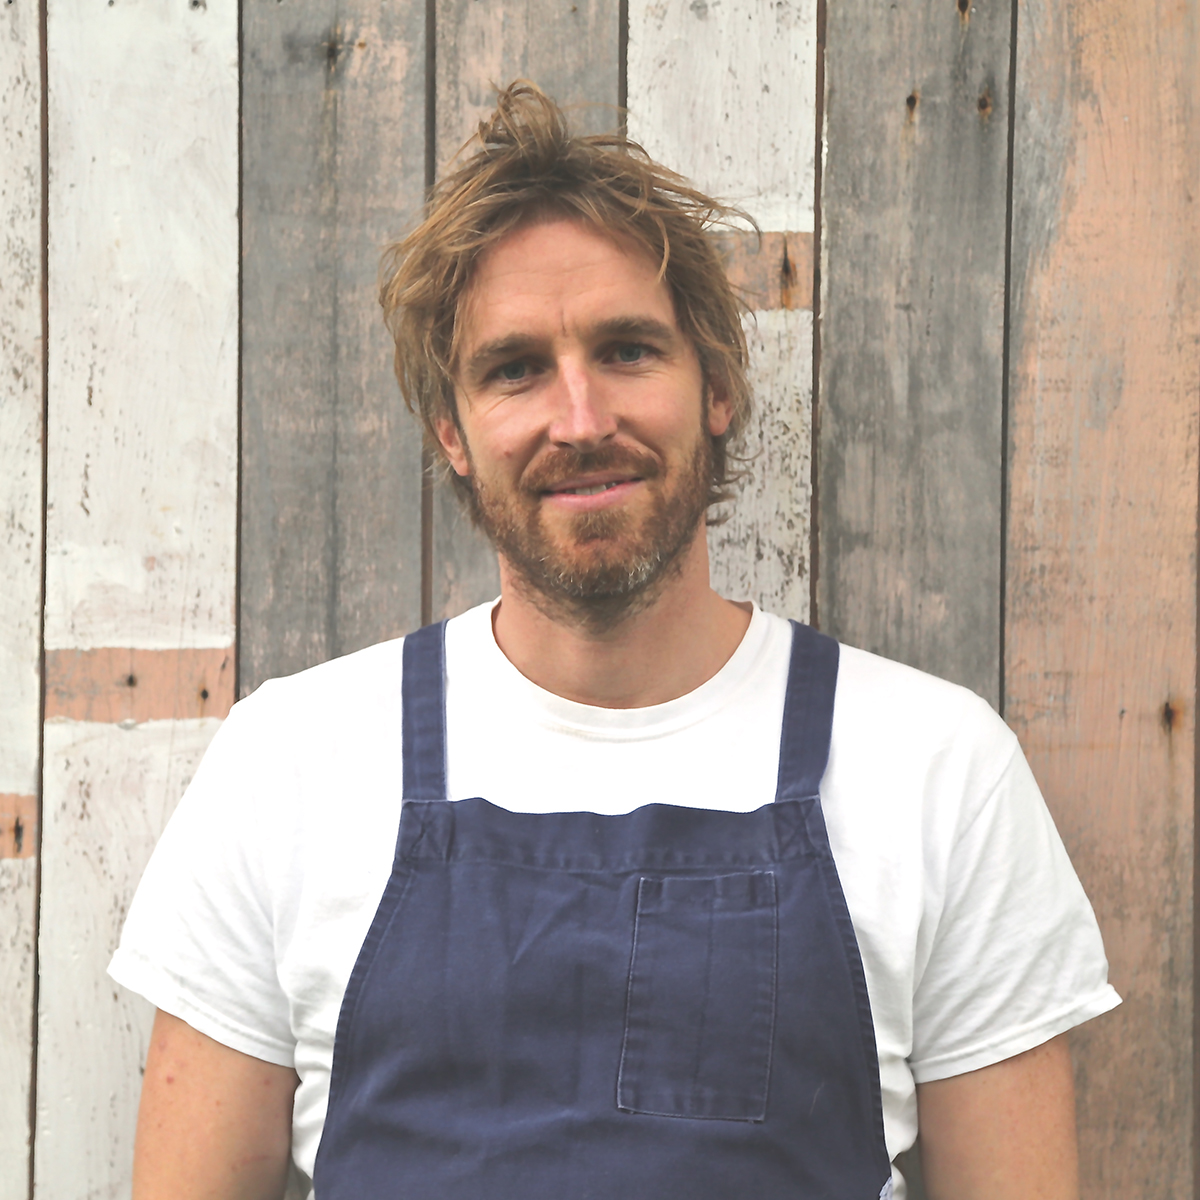 We are SO EXCITED to announce that culinary icon Darren Robertson will be joining the Tasting Australia presented by RAA Travel team as Food Curator for the 2021 Program! 🎉👏👉 https://t.co/B59MhSJueF  #tastingaustralia #seesouthaustralia #adelaide https://t.co/EPn2XyH55n